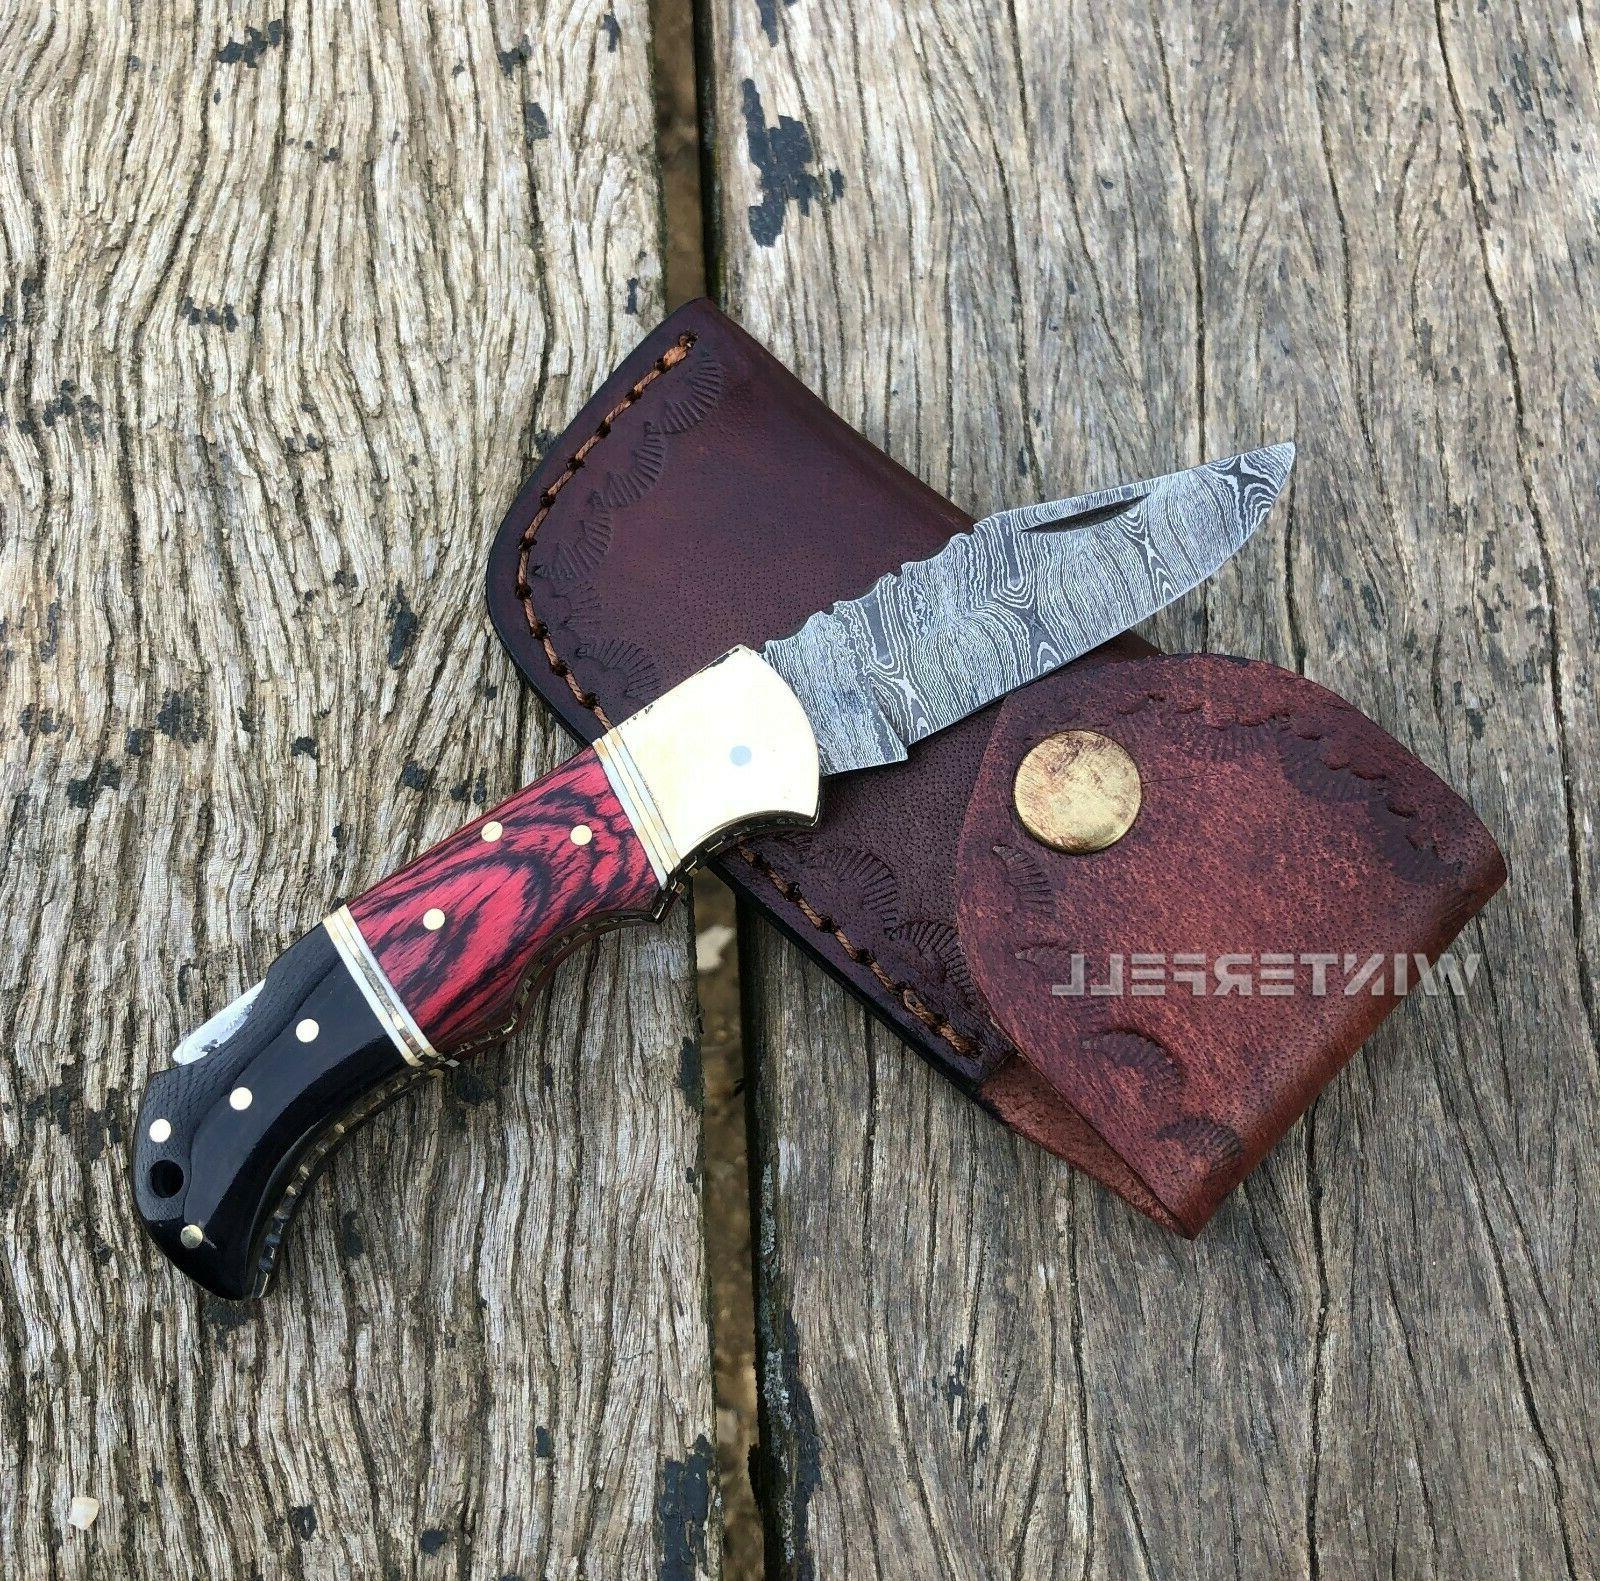 Damascus Steel Folding Knife Horn+Wood Handle With